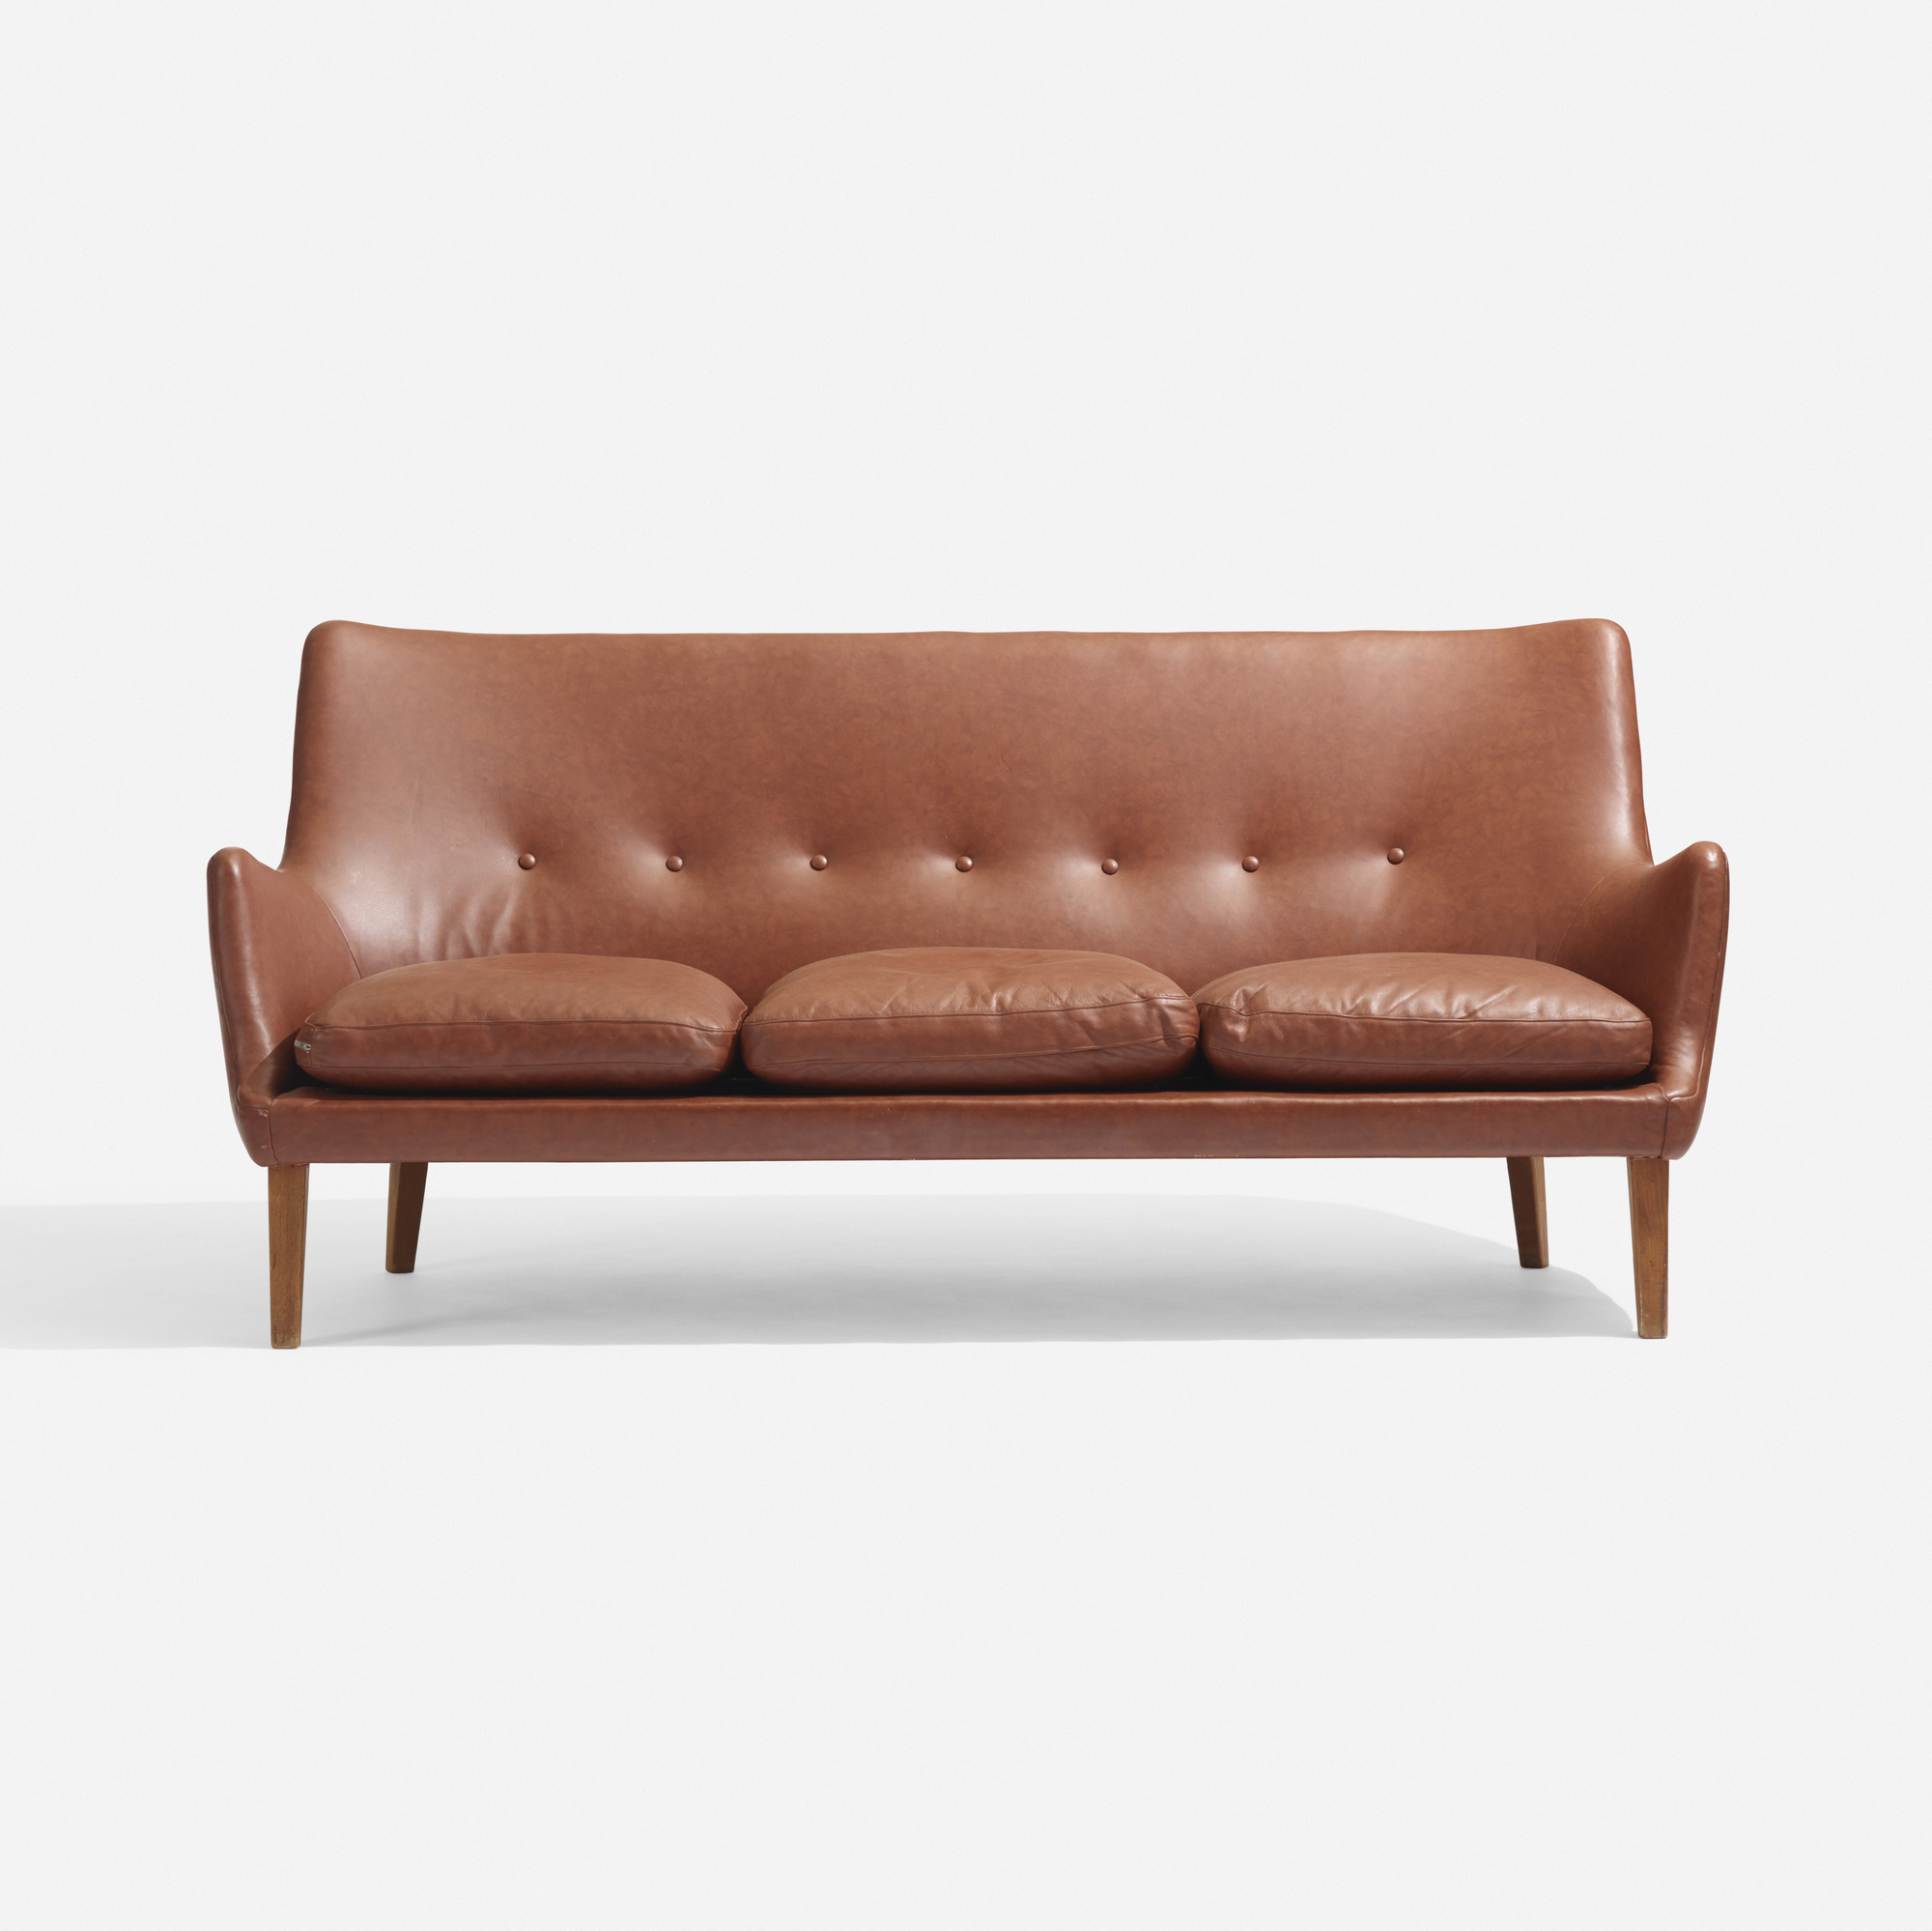 arne vodder sofa arne vodder sofa in green patinated leather lauritz thesofa. Black Bedroom Furniture Sets. Home Design Ideas